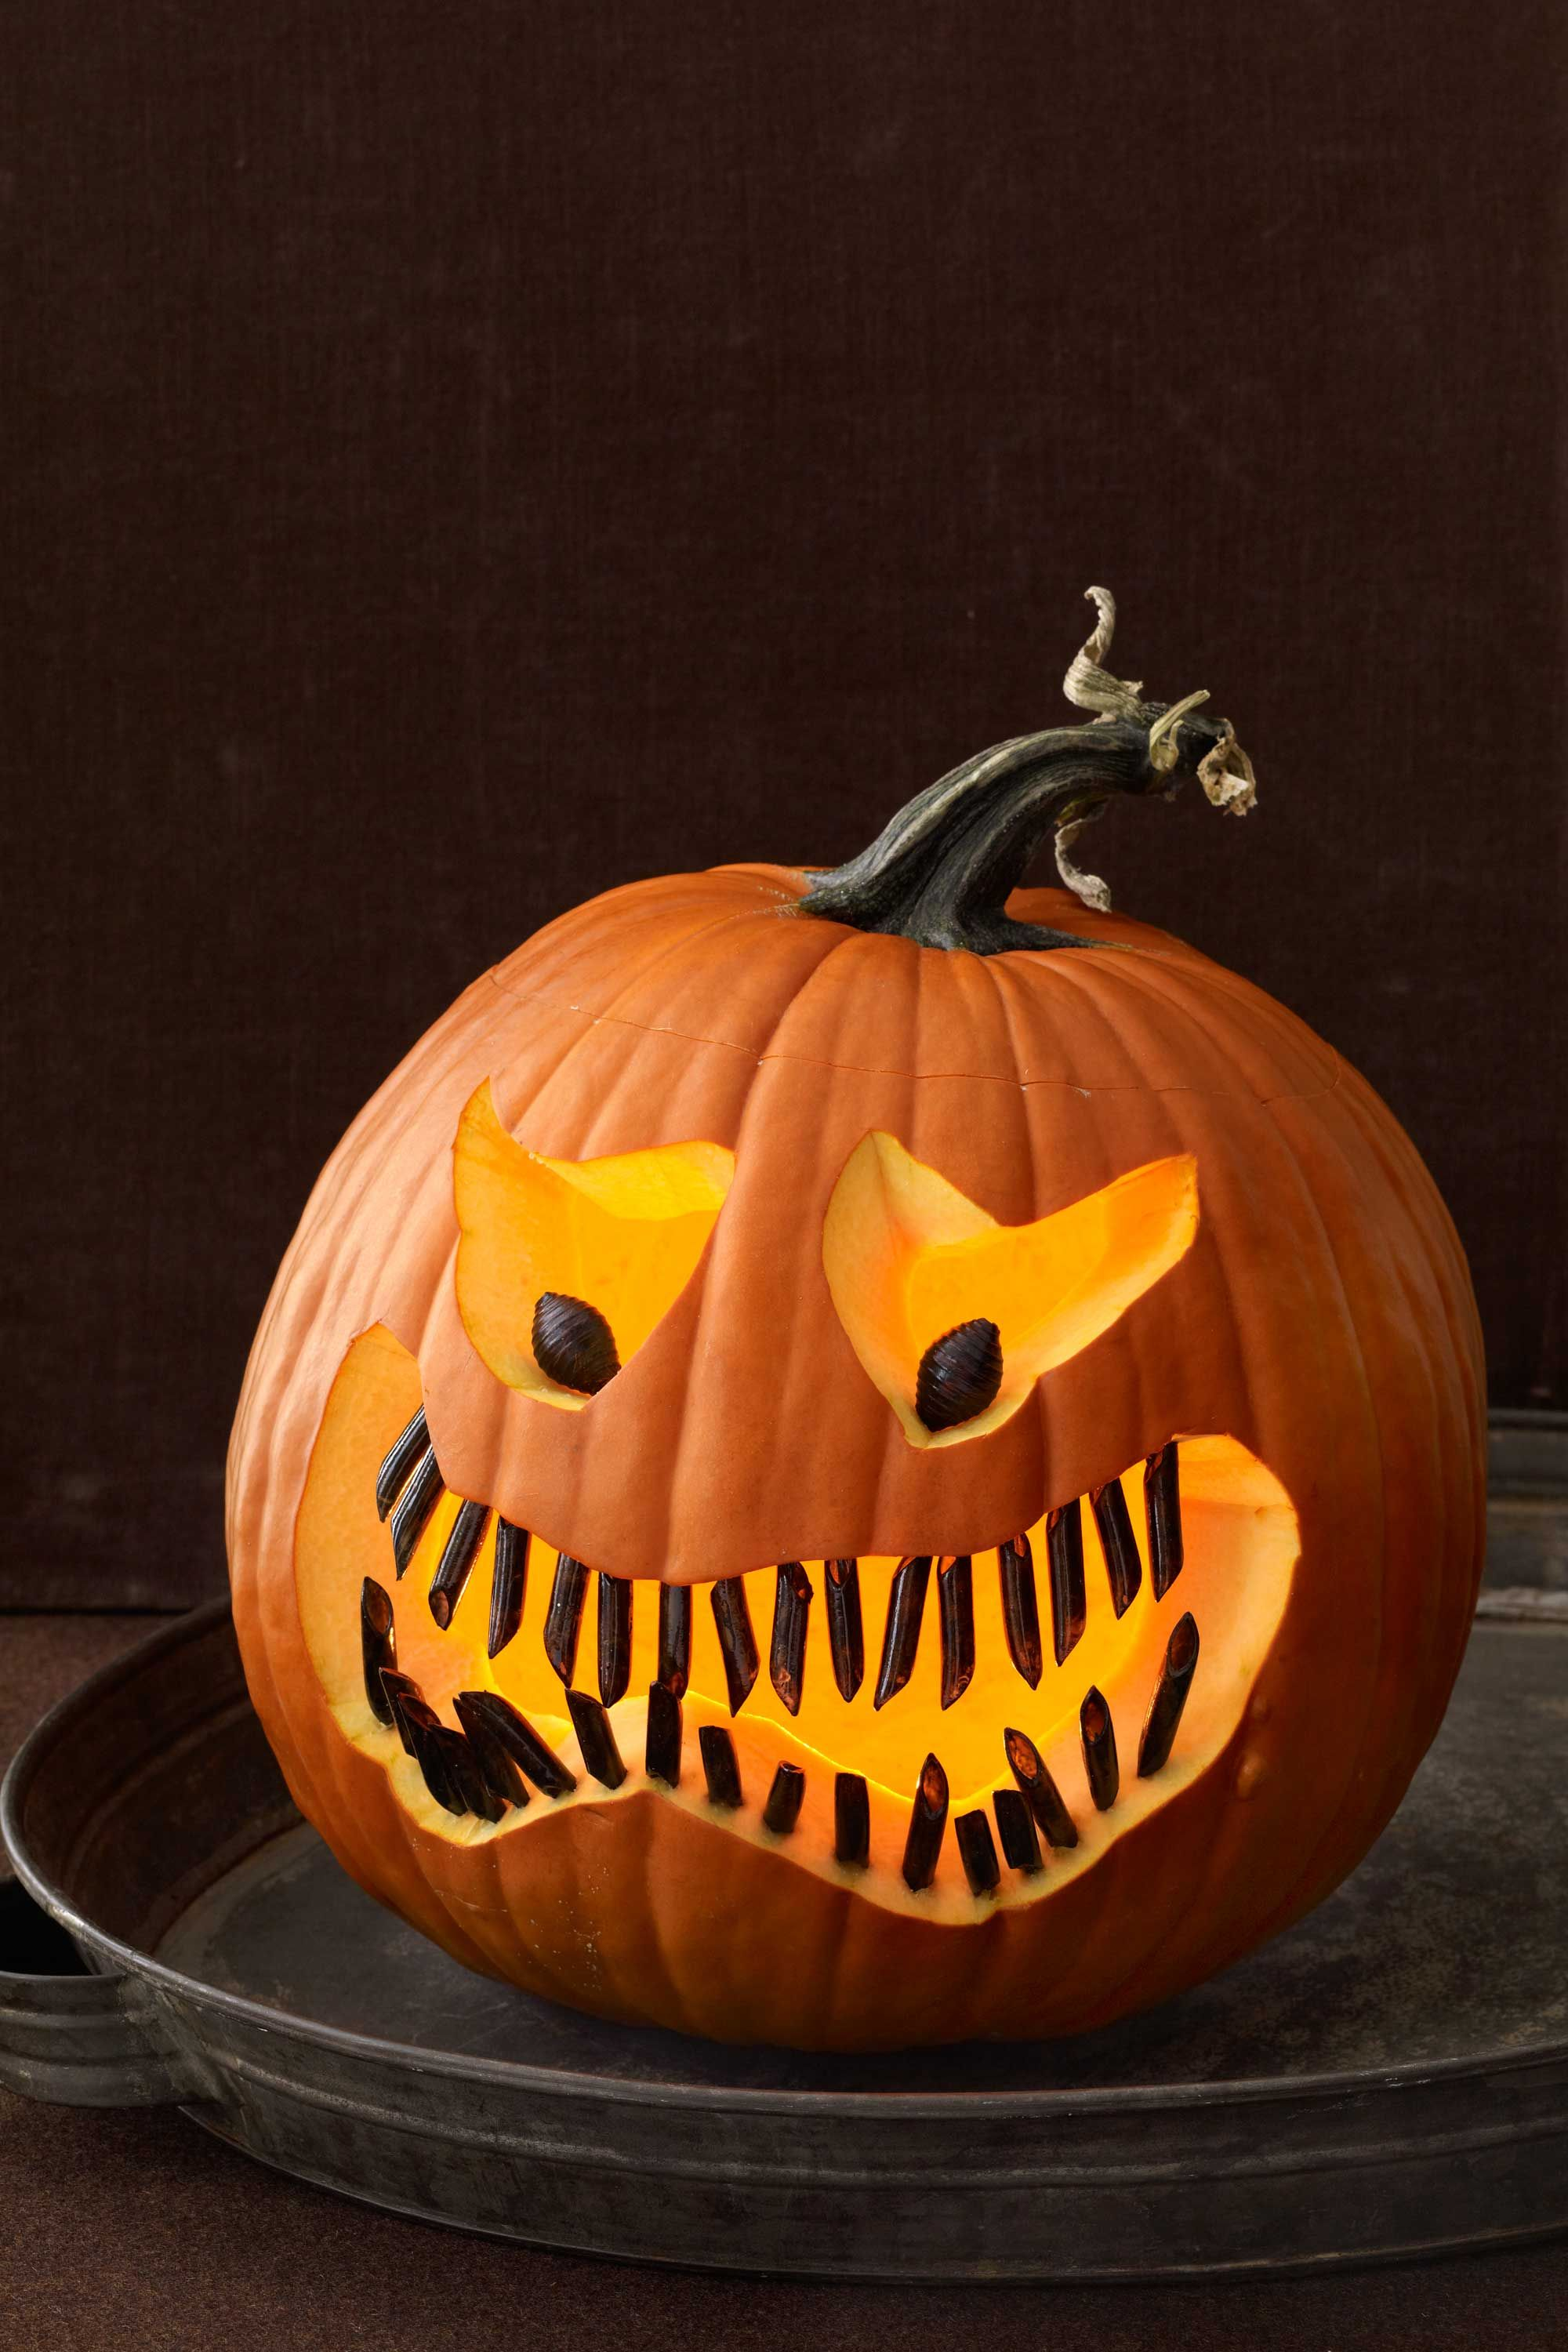 Best pumpkin carving ideas halloween creative jack o